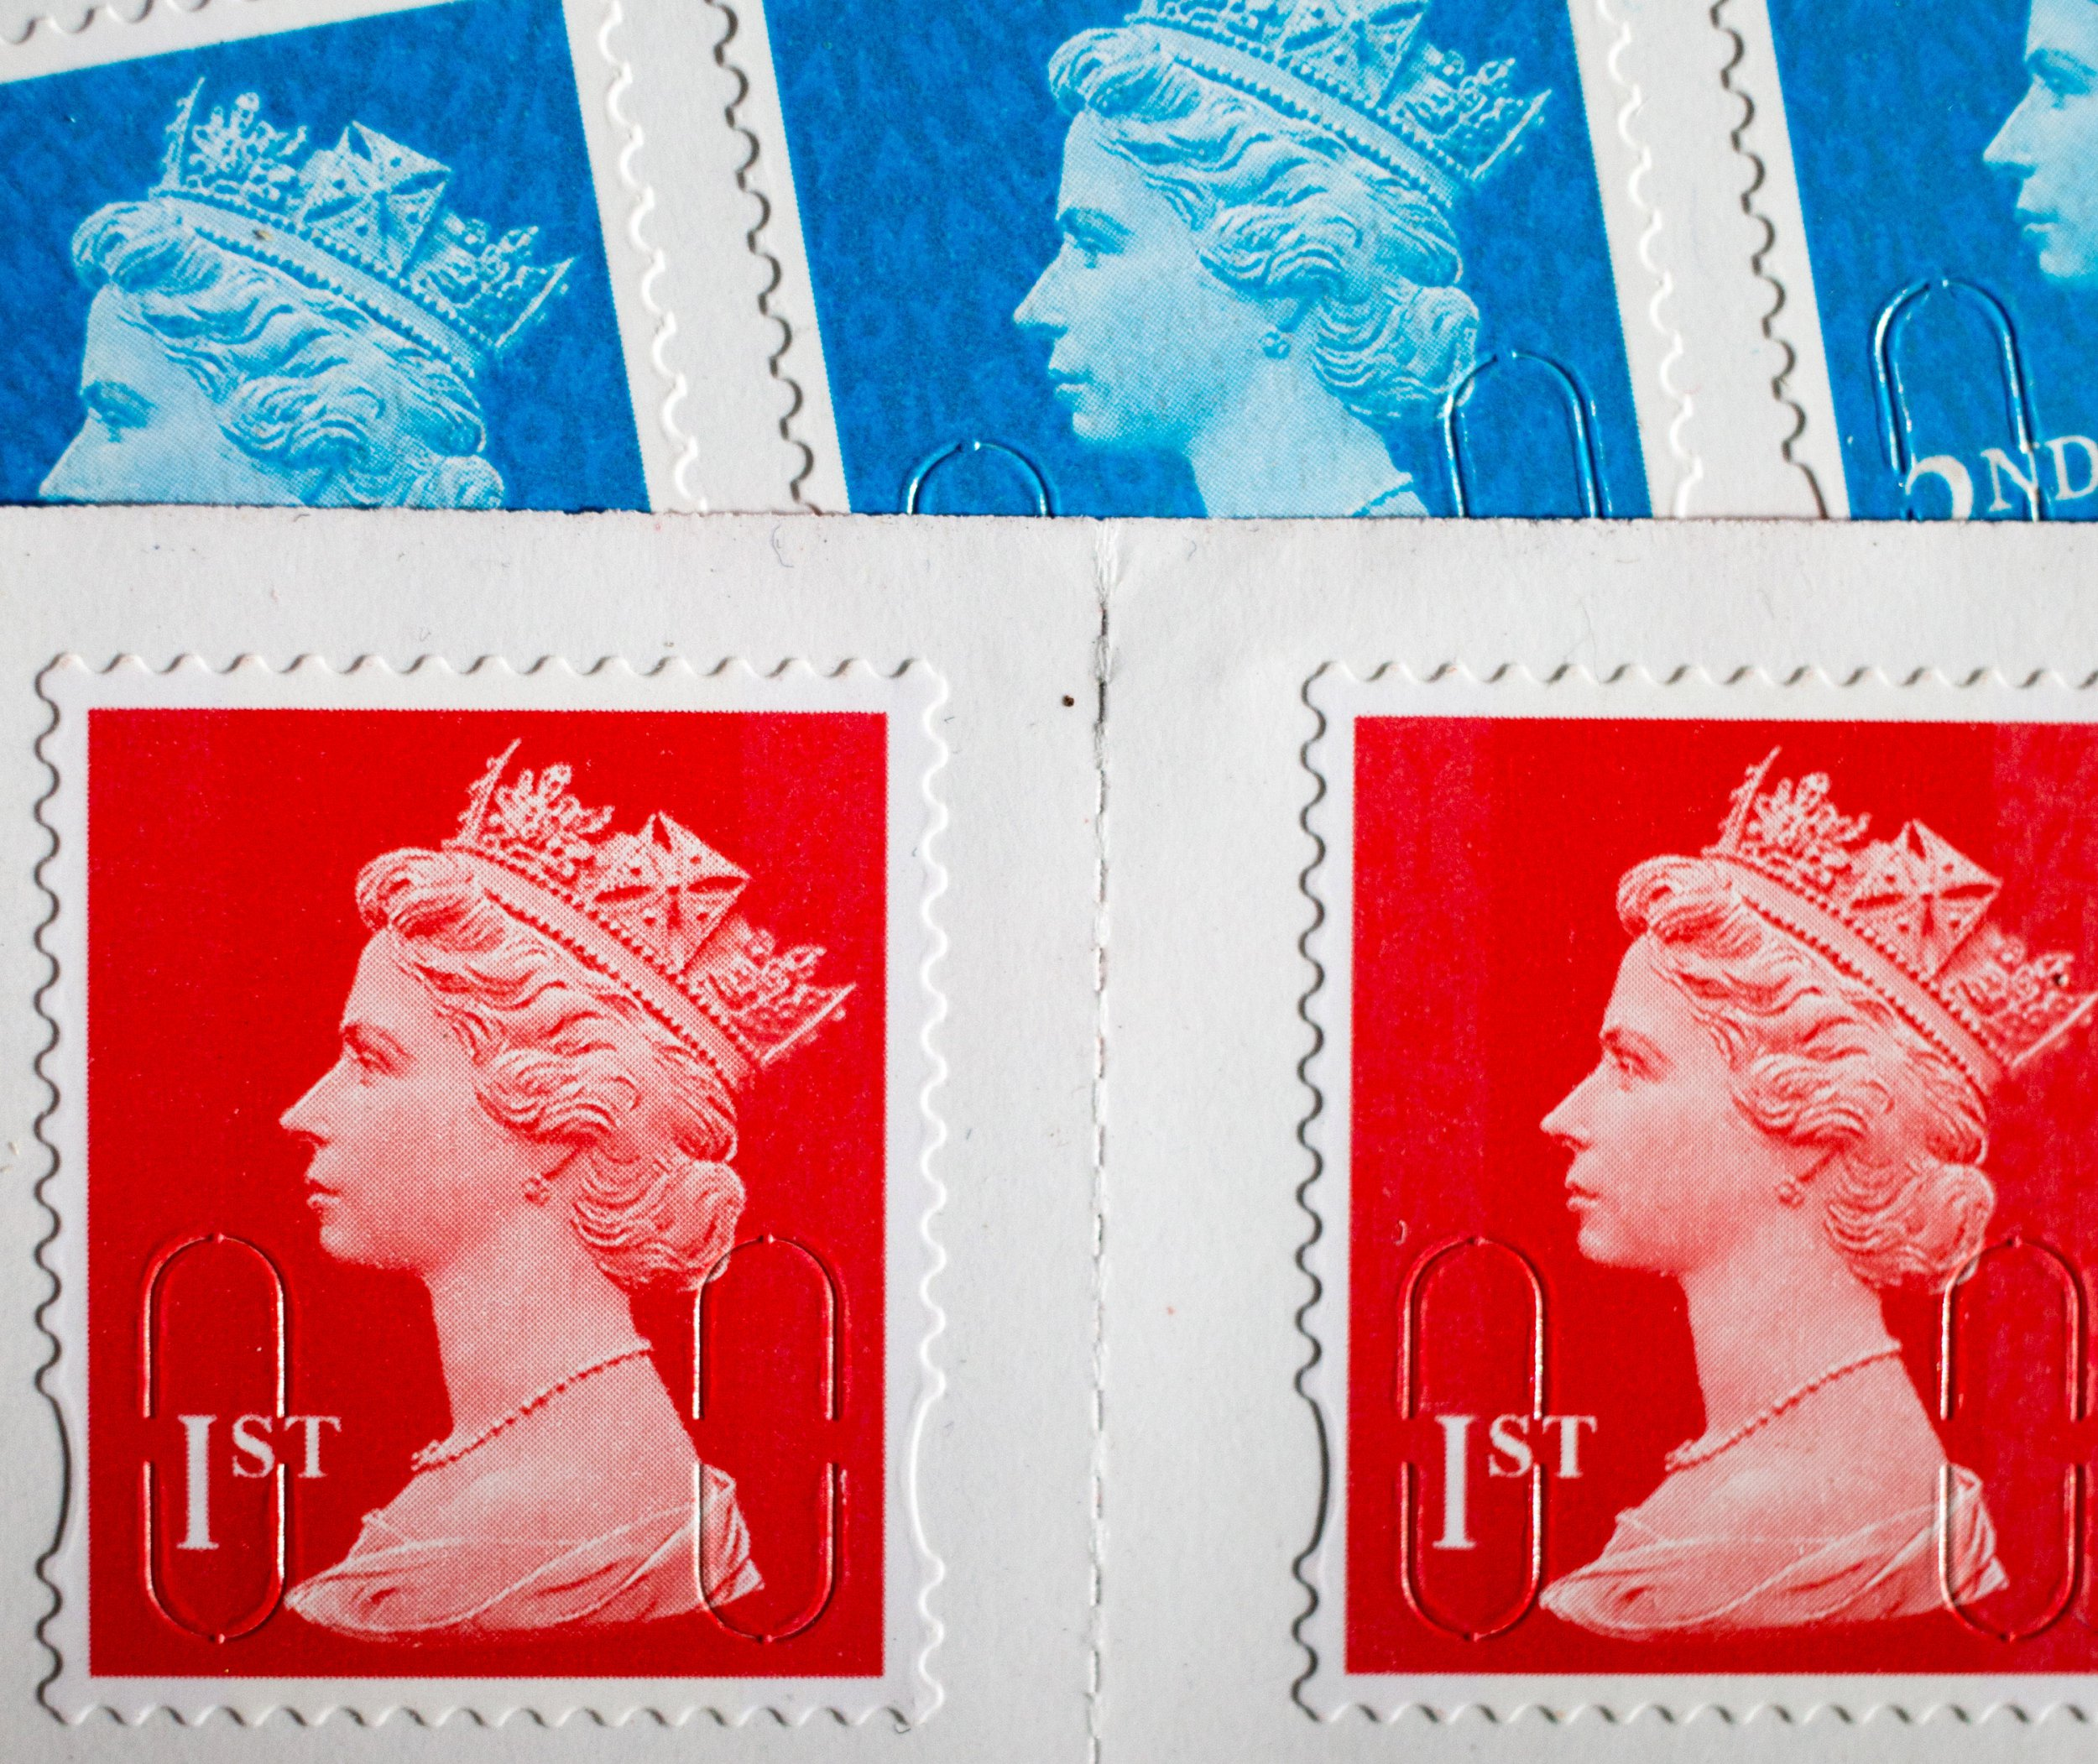 BATH, ENGLAND - FEBRUARY 29: In this photo illustration first and second class postage stamps are displayed on February 29, 2016 in Bath, England. Royal Mail, recently privatised, is set to raise the price of stamps by 1p. The increases that take affect from 29 March, will mean a first class stamp will now cost 64p and a second class stamp will now be 55p. (Photo by Matt Cardy/Getty Images)